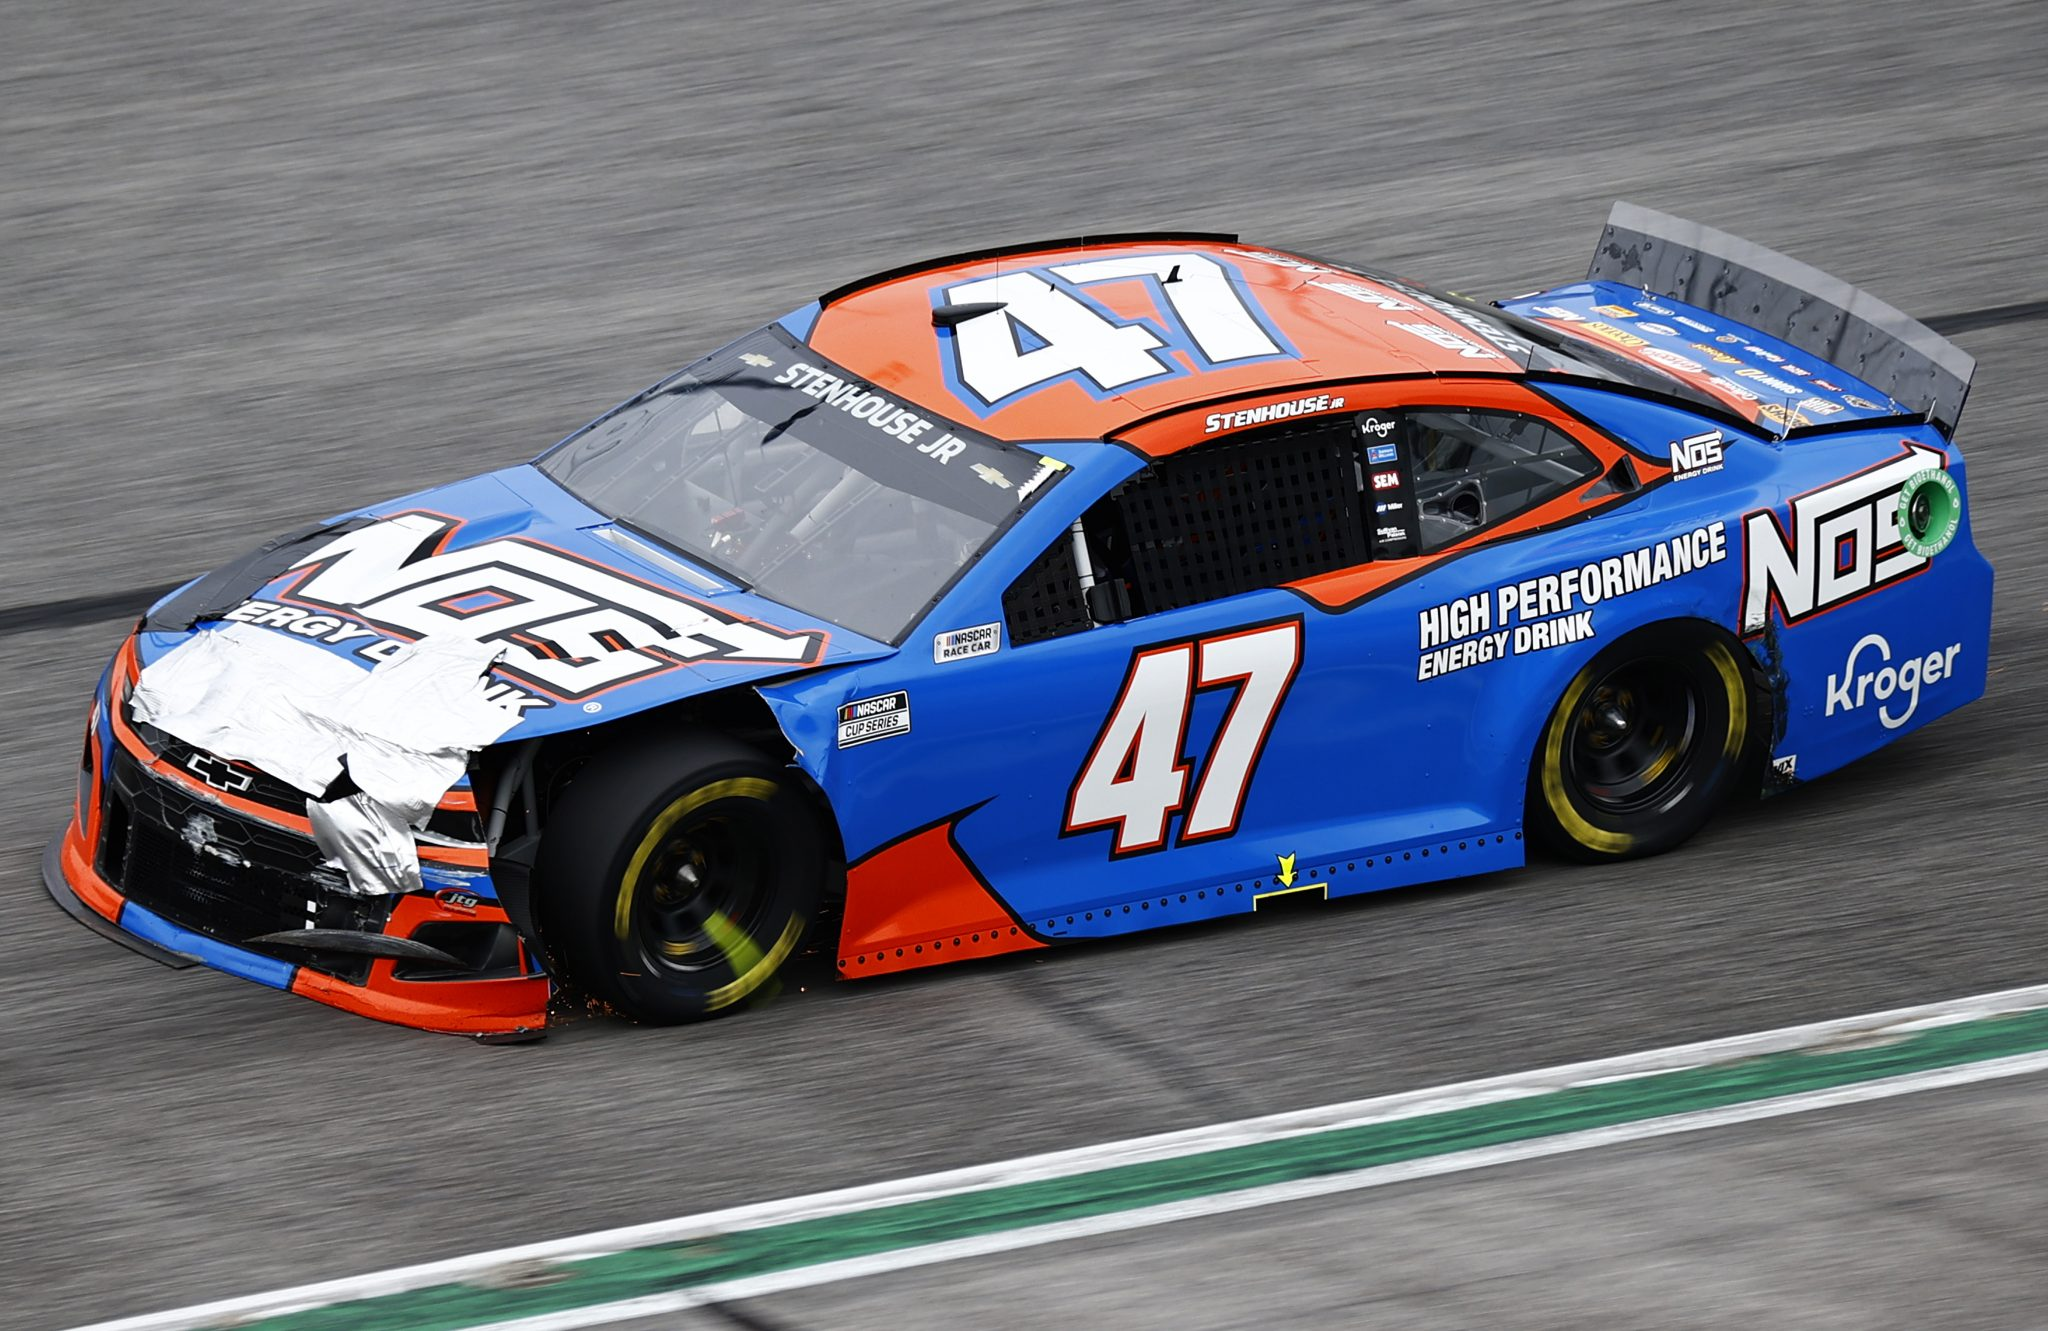 HAMPTON, GEORGIA - JULY 11: Ricky Stenhouse Jr., driver of the #47 NOS Energy Drink Chevrolet, drives during the NASCAR Cup Series Quaker State 400 presented by Walmart at Atlanta Motor Speedway on July 11, 2021 in Hampton, Georgia. (Photo by Jared C. Tilton/Getty Images)   Getty Images